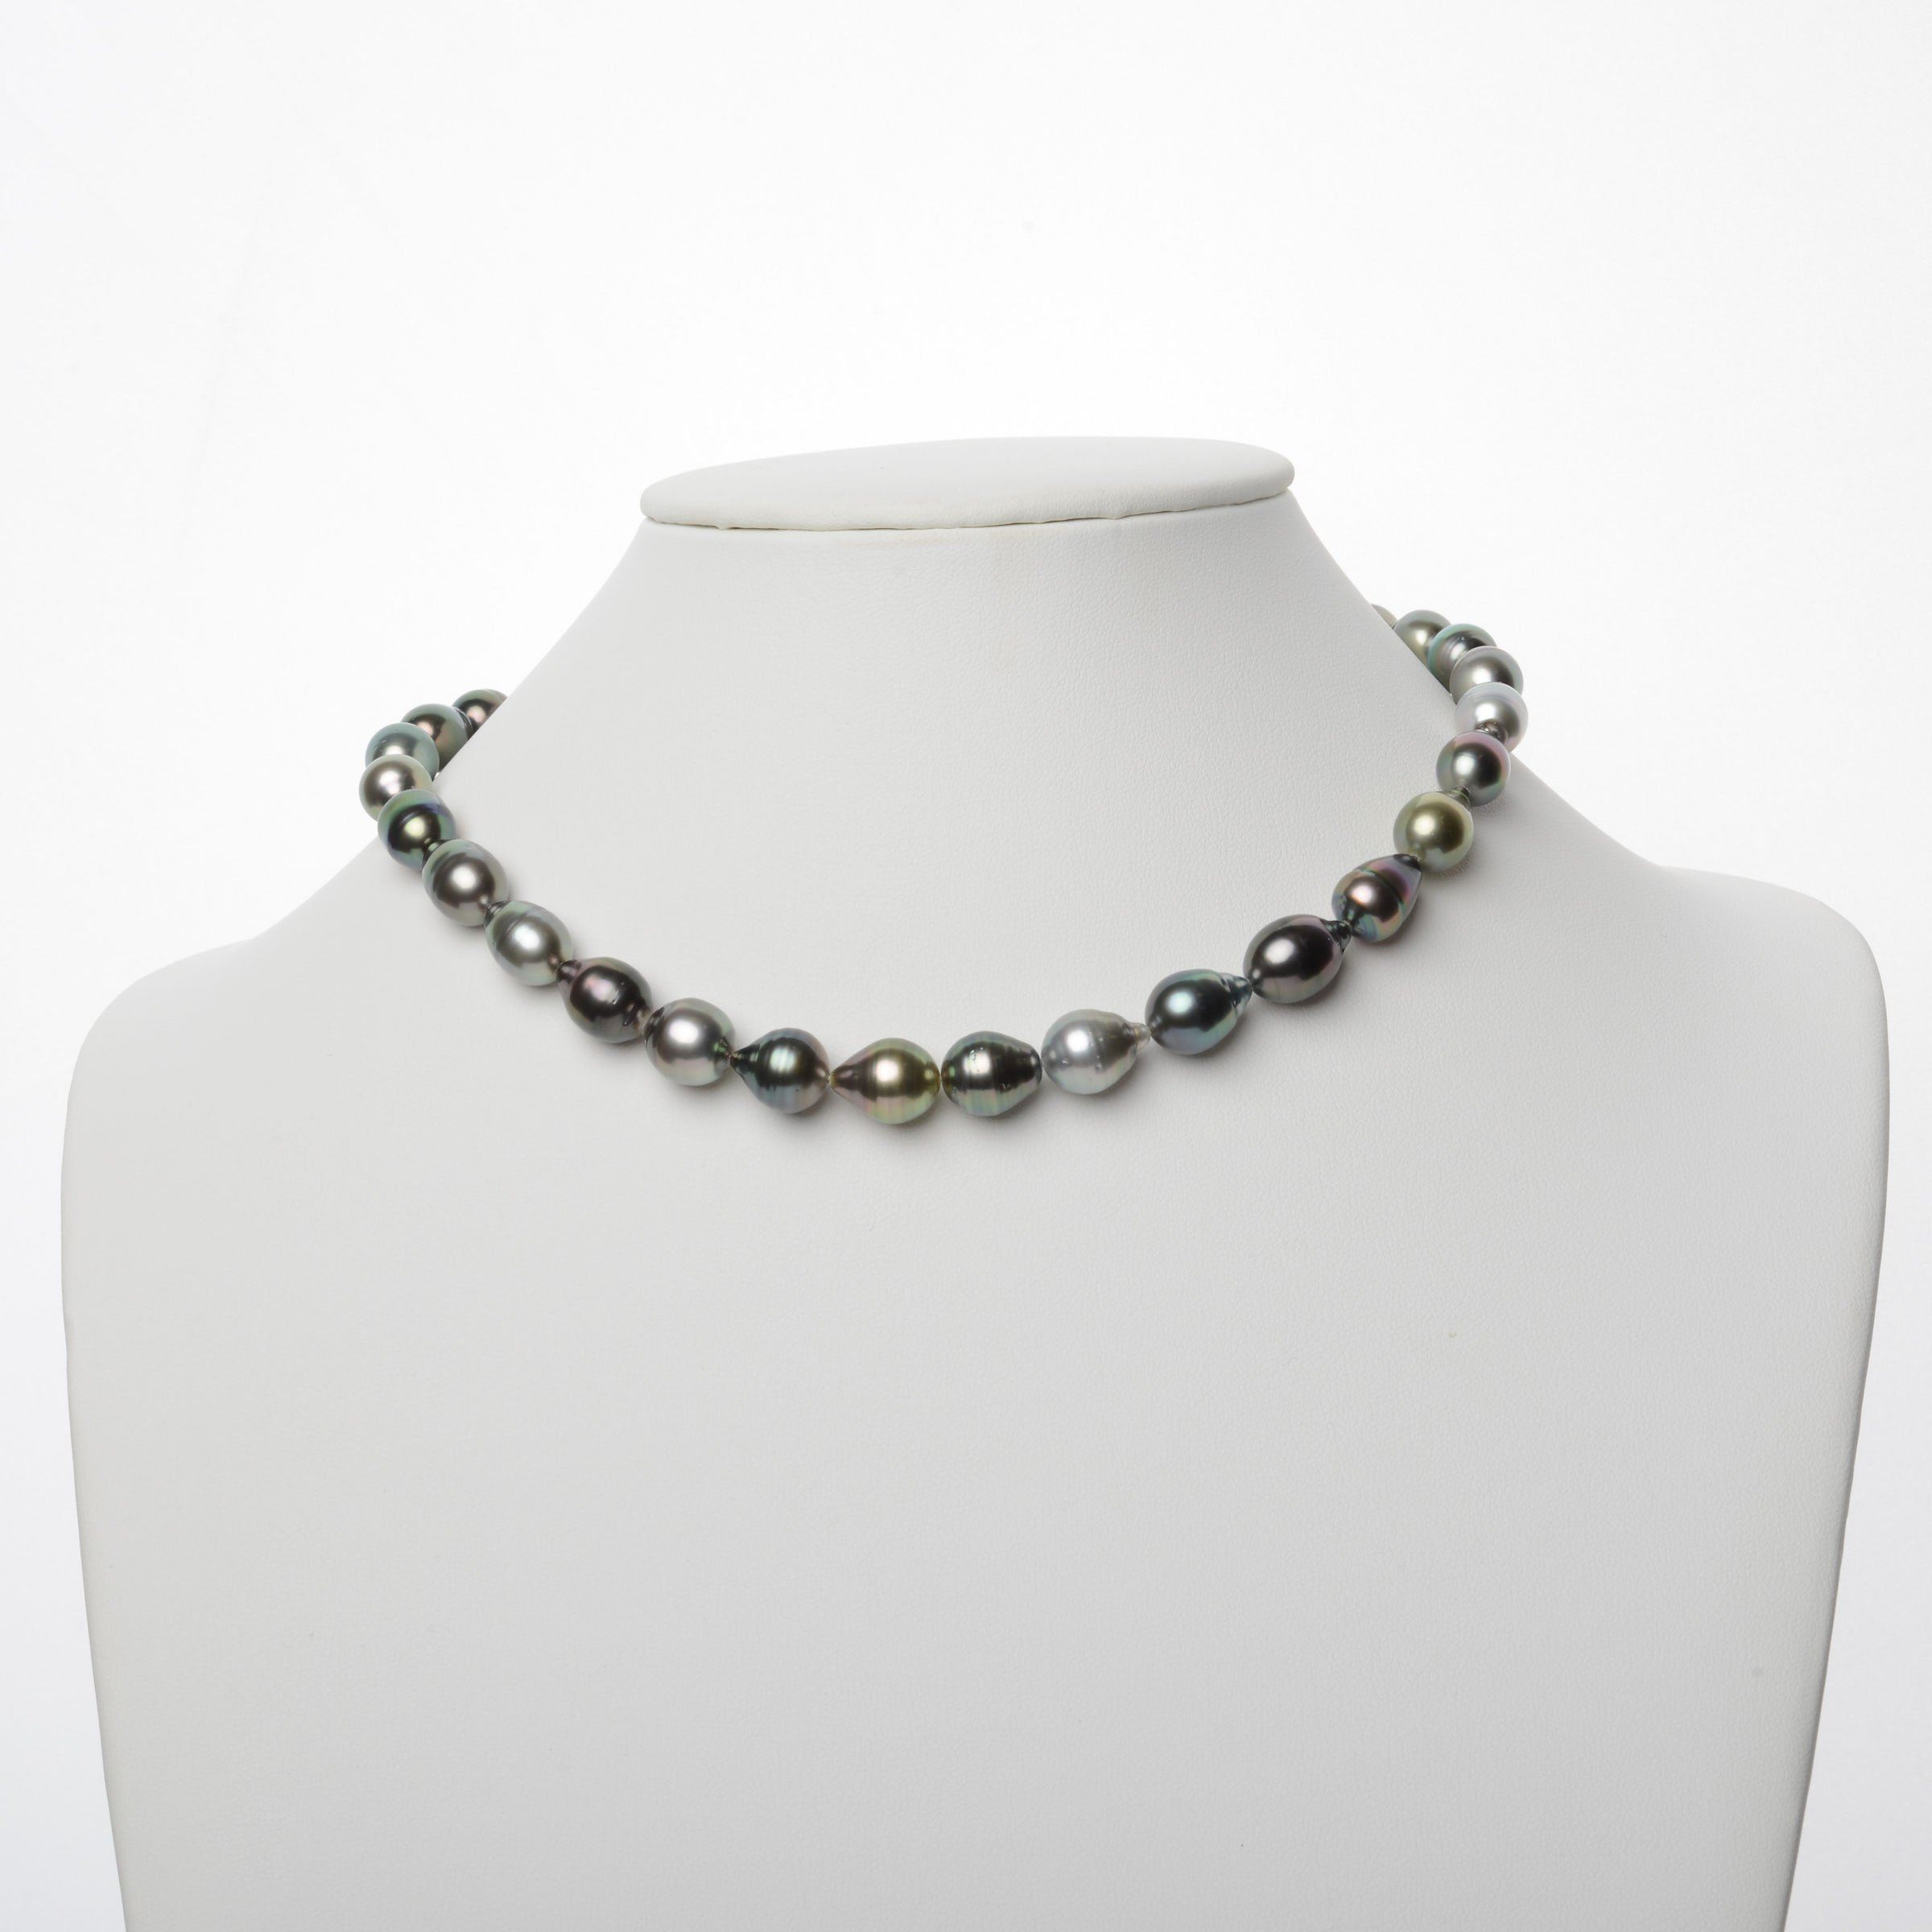 9.0-11.1 mm AA+/AAA Tahitian Baroque Pearl Necklace